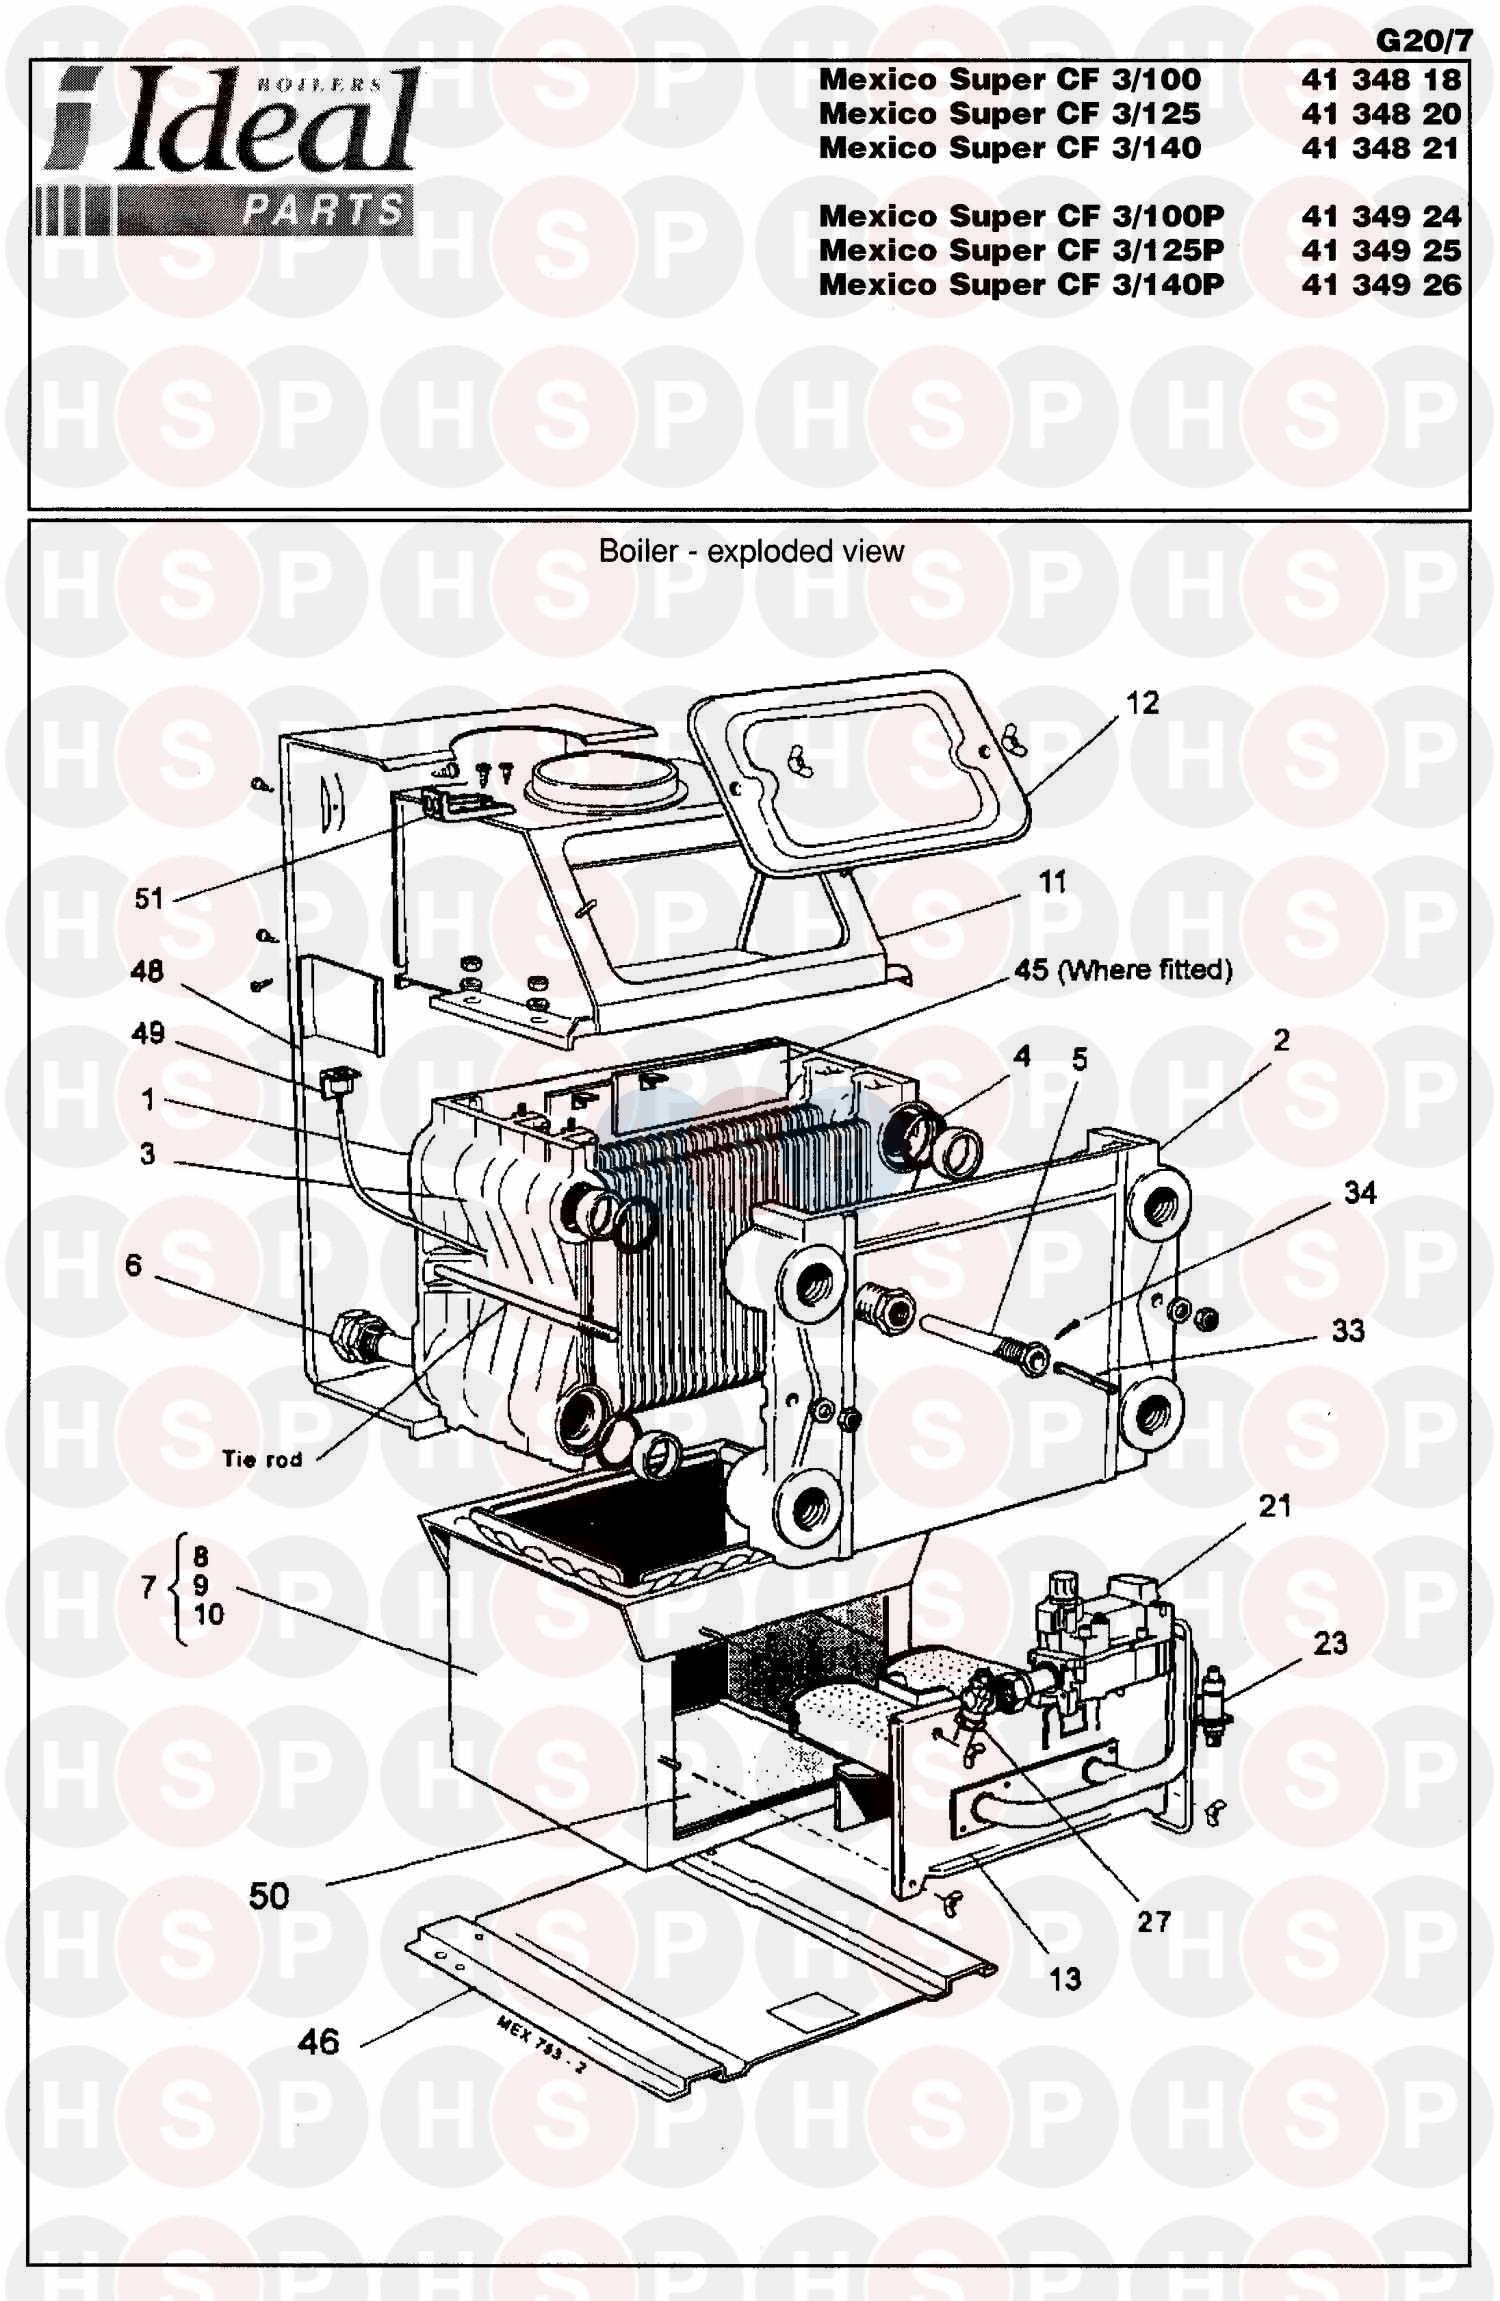 Ideal MEXICO SUPER 3 CF 70 (BOILER ASSEMBLY 2) Diagram